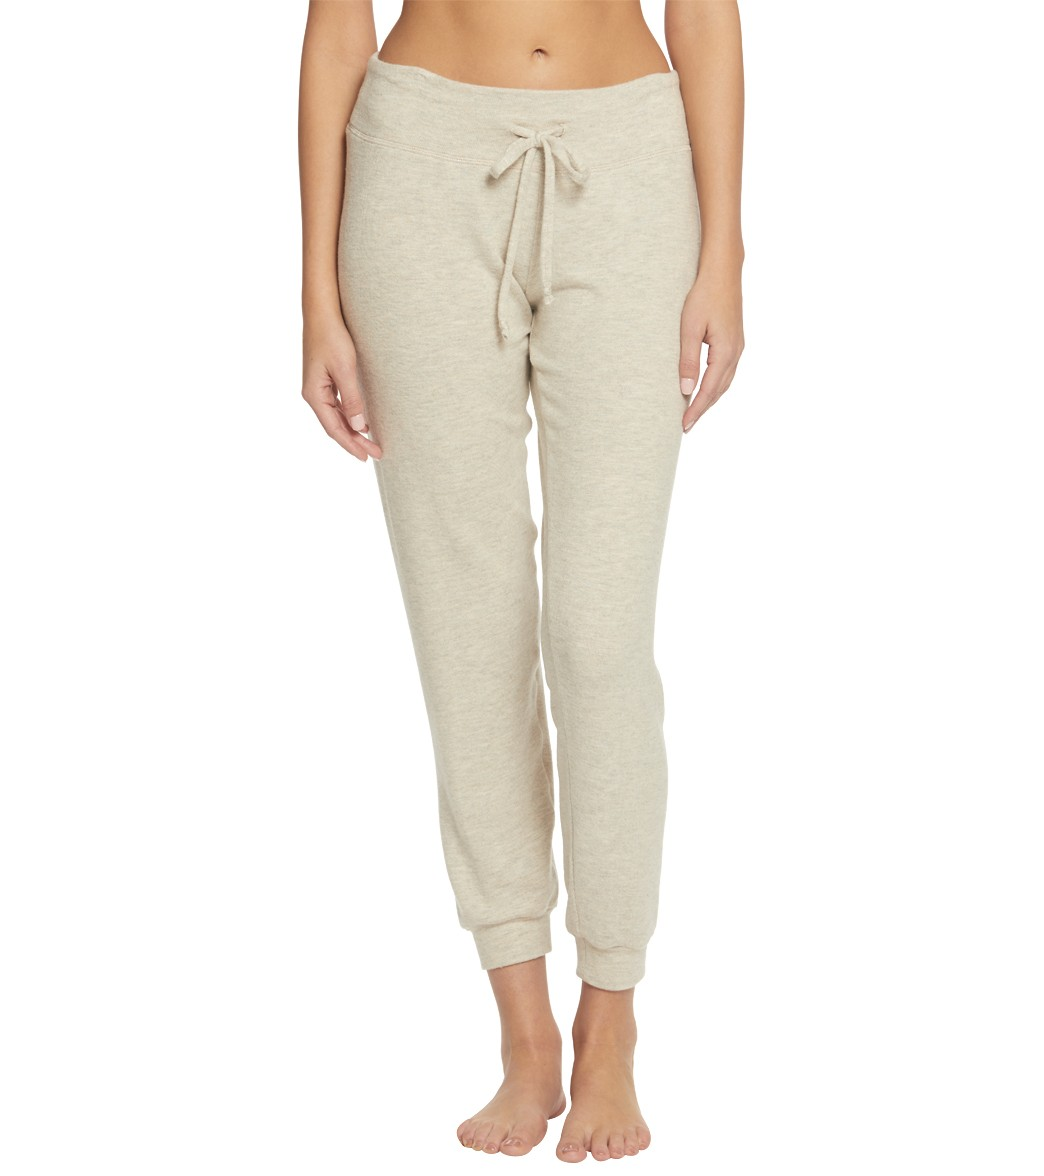 cbcb6ca00d758 Beyond Yoga Lounge Around 7/8 Joggers at YogaOutlet.com - Free Shipping